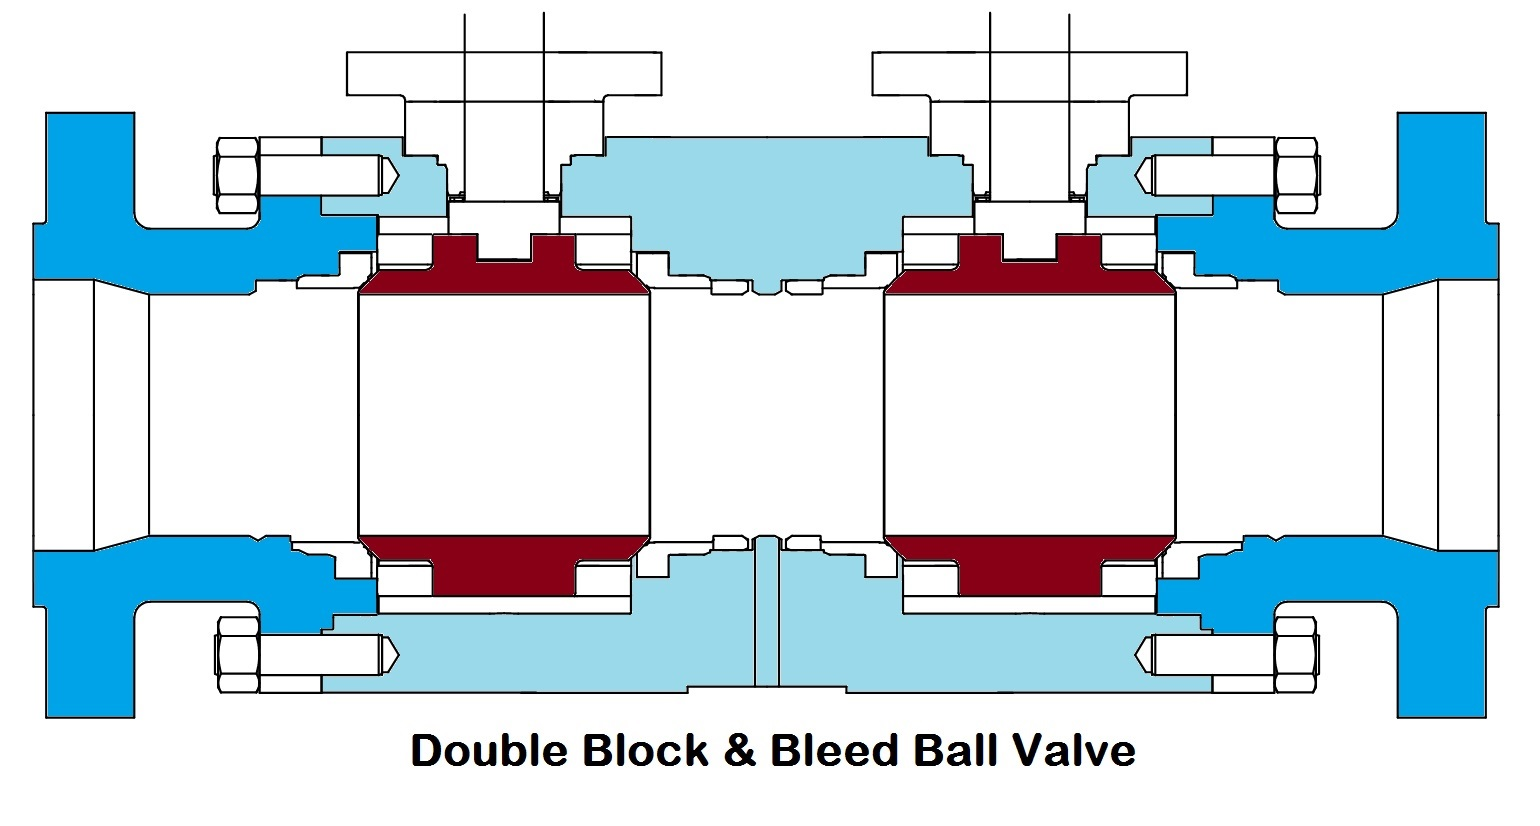 hight resolution of double bloock bleed ball valve